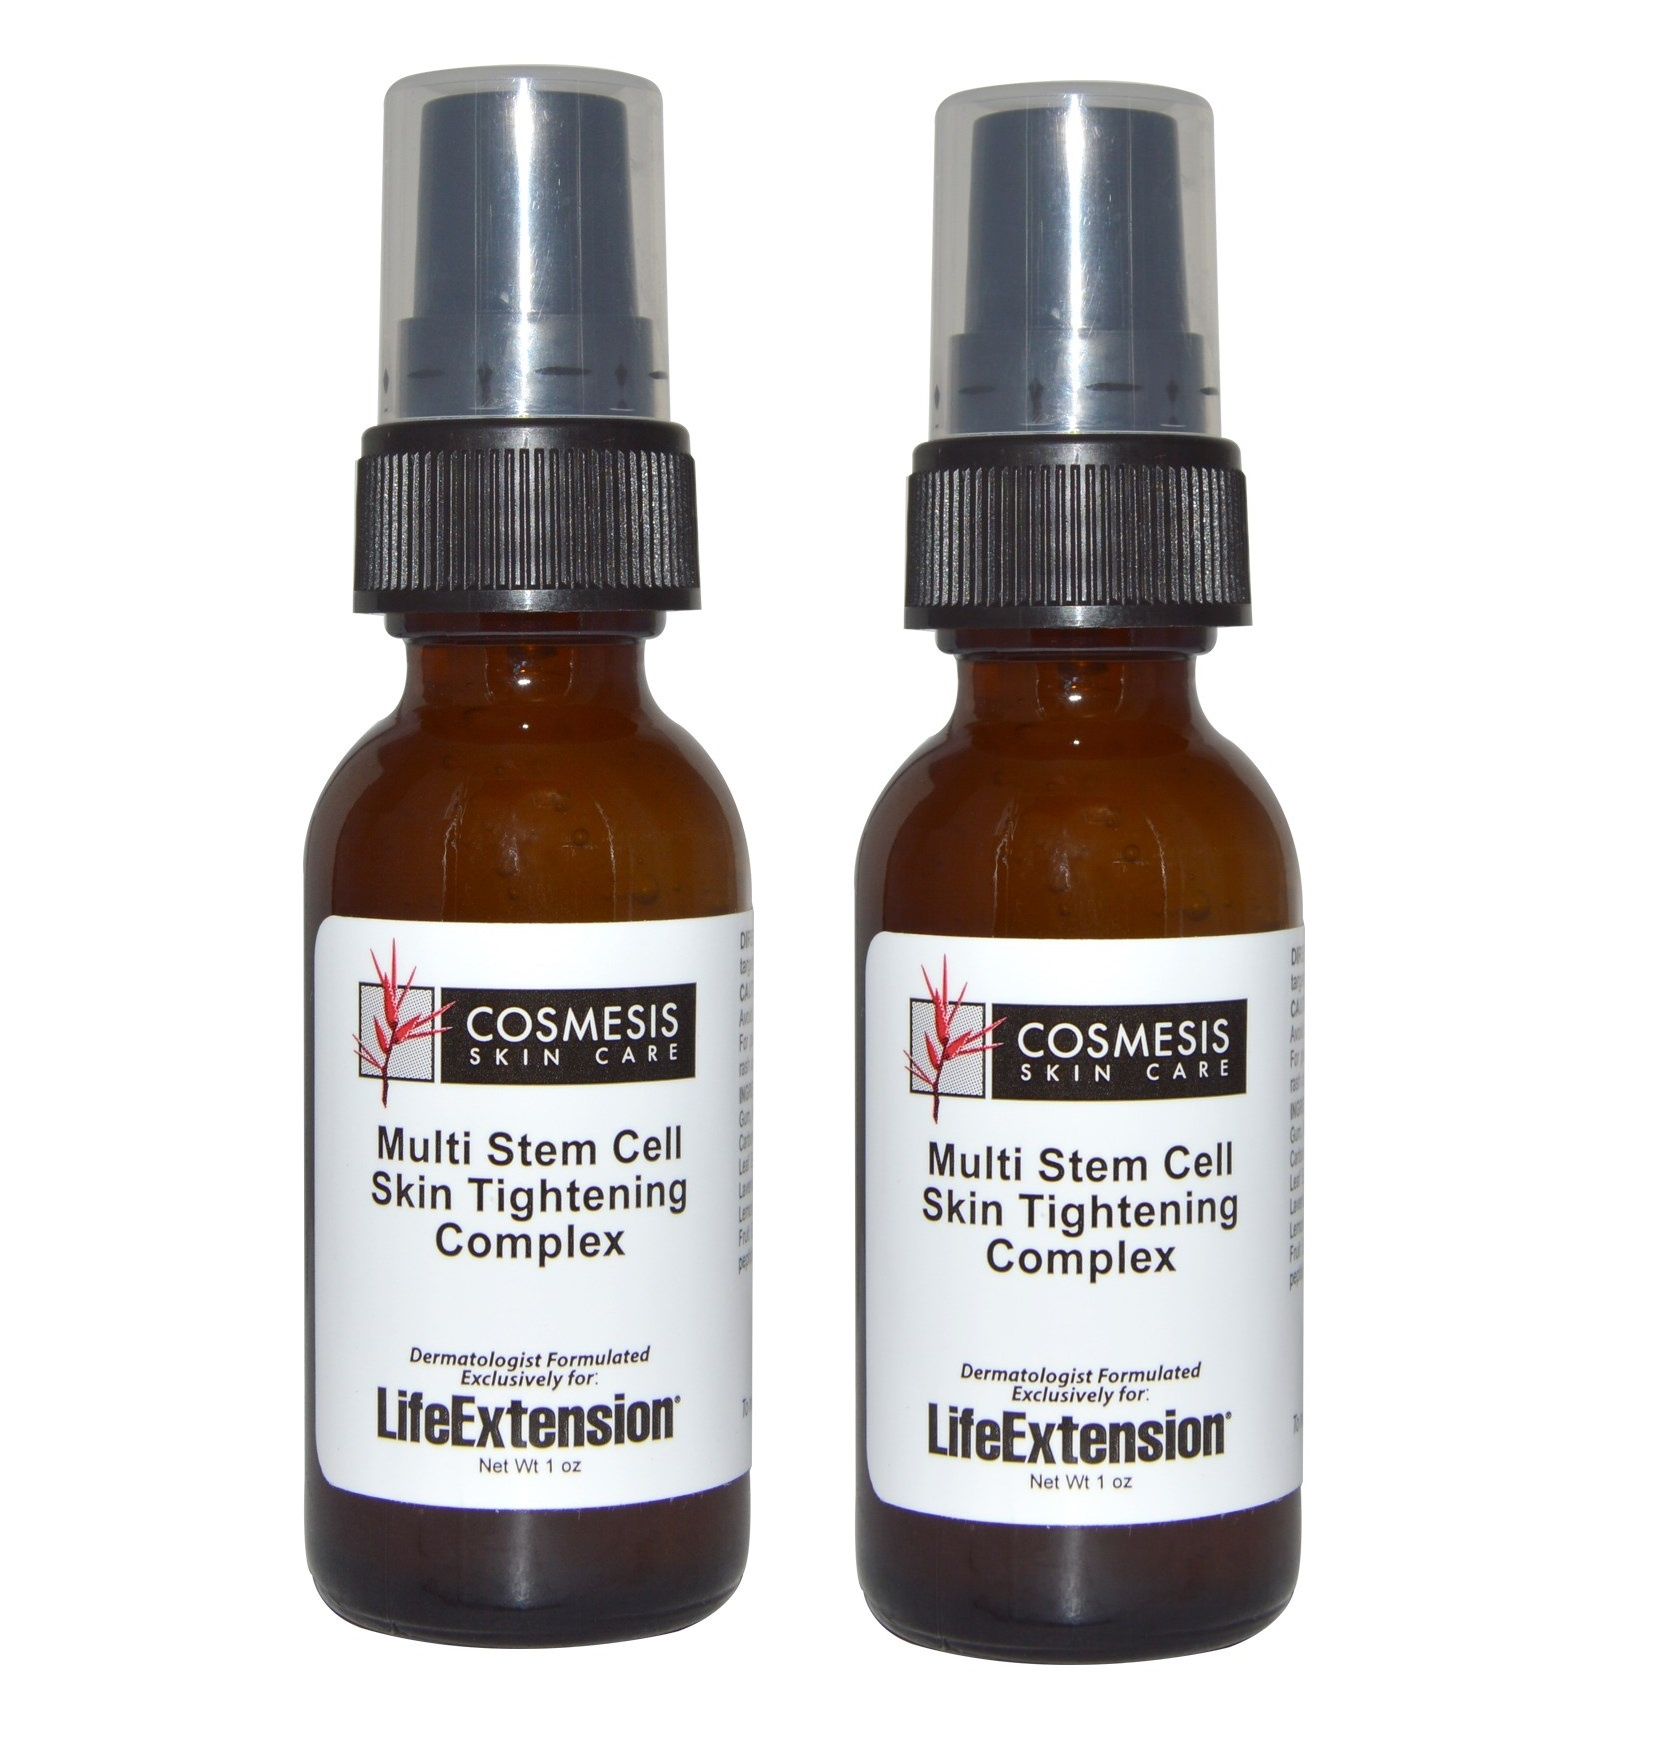 Life Extension Multi Stem Cell Skin Tightening Complex, 1 oz., 2-pack